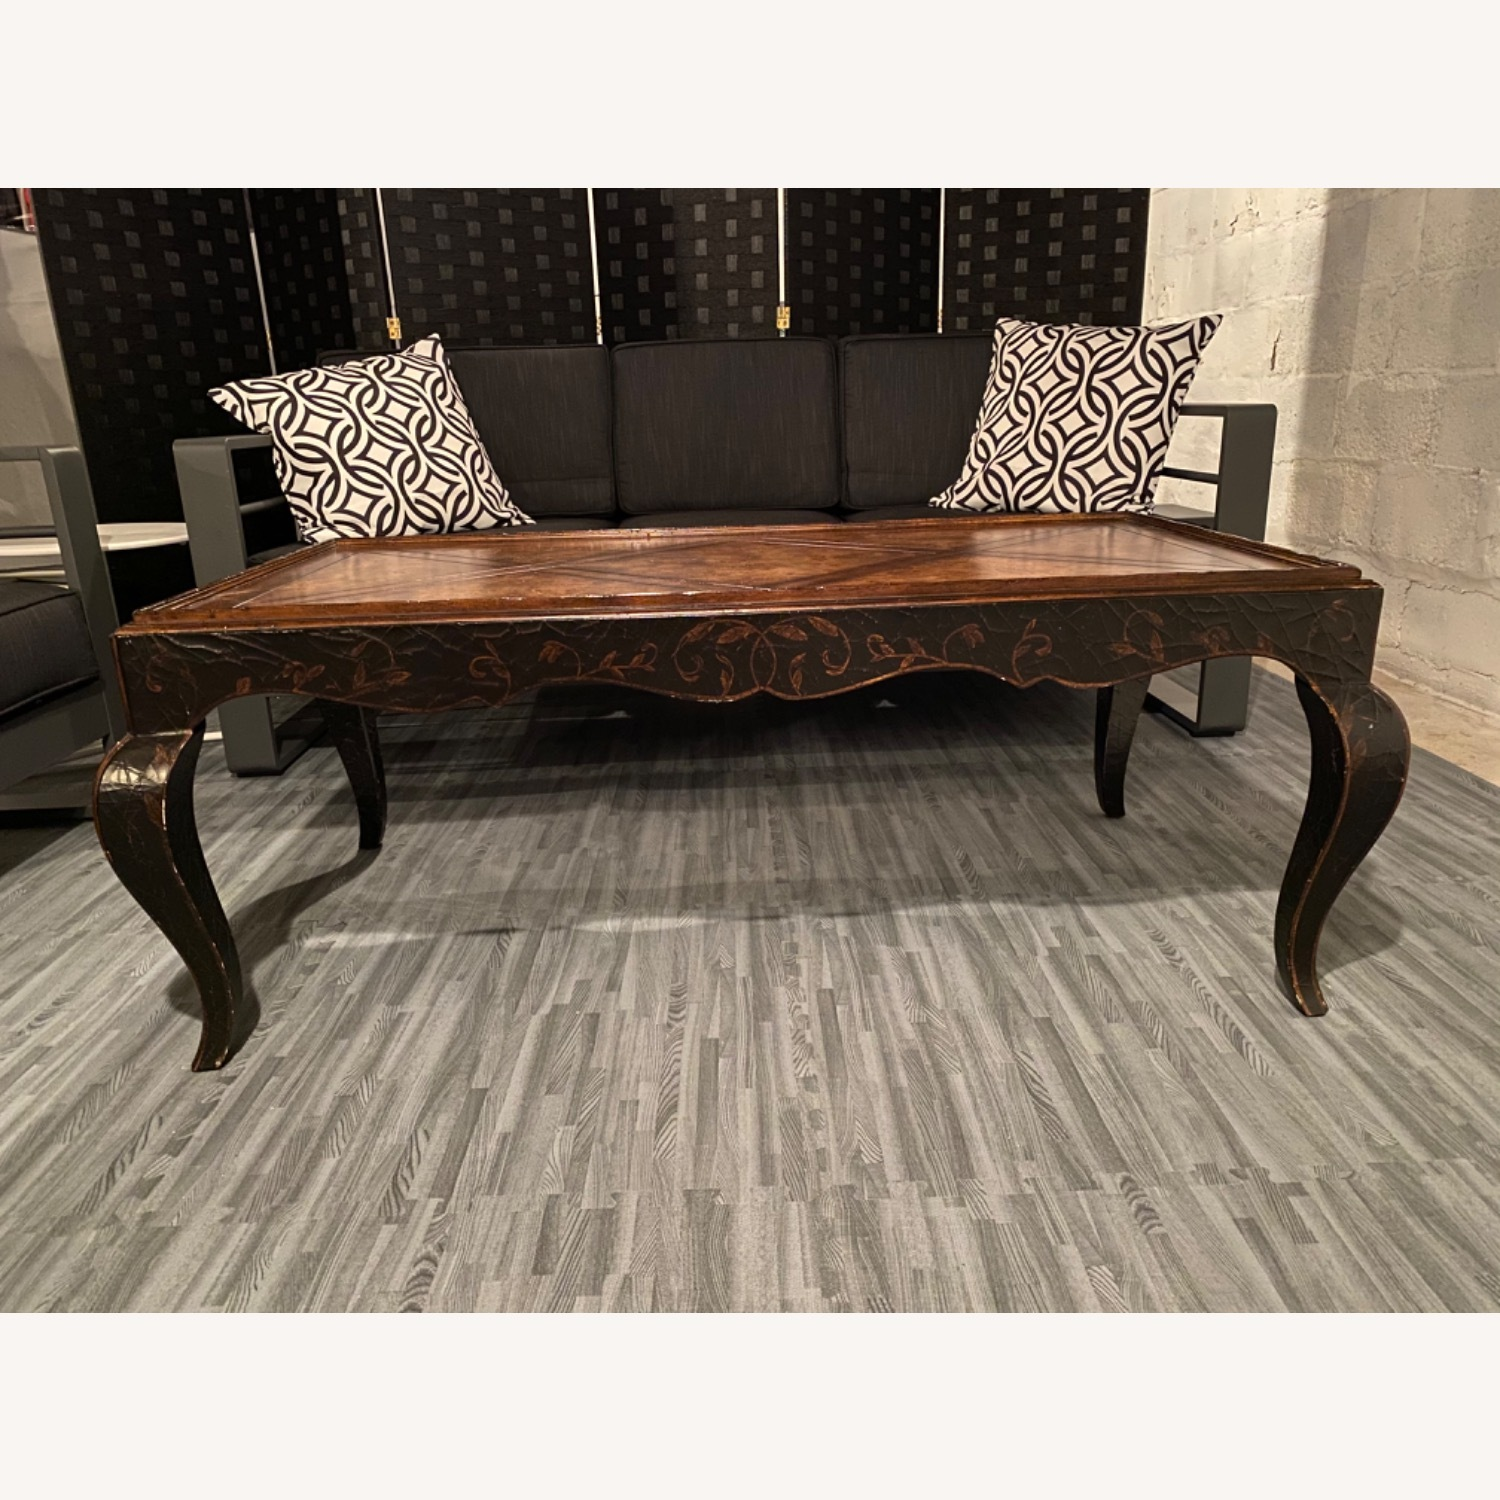 Baker Milling Road Chinoiserie Coffee Table - image-4